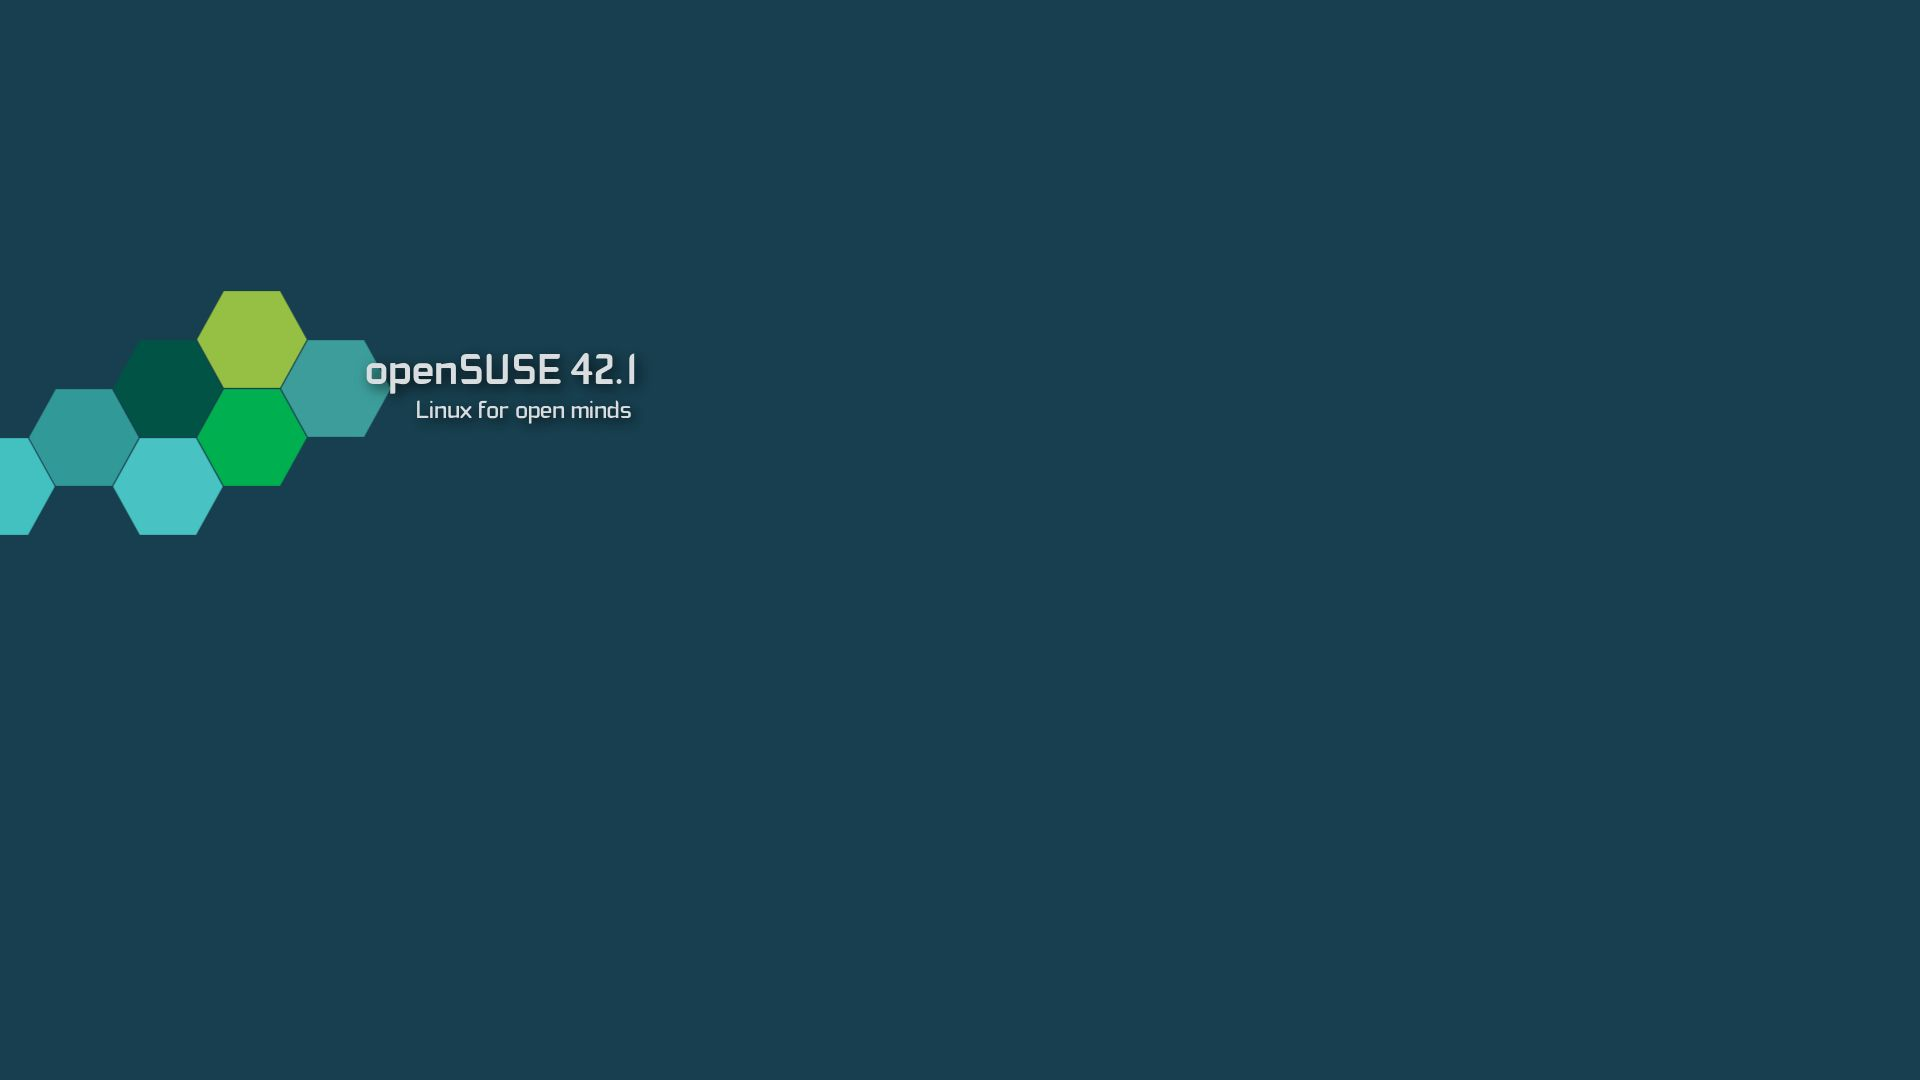 1920x1080 openSUSE:Wallpapers - openSUSE Wiki